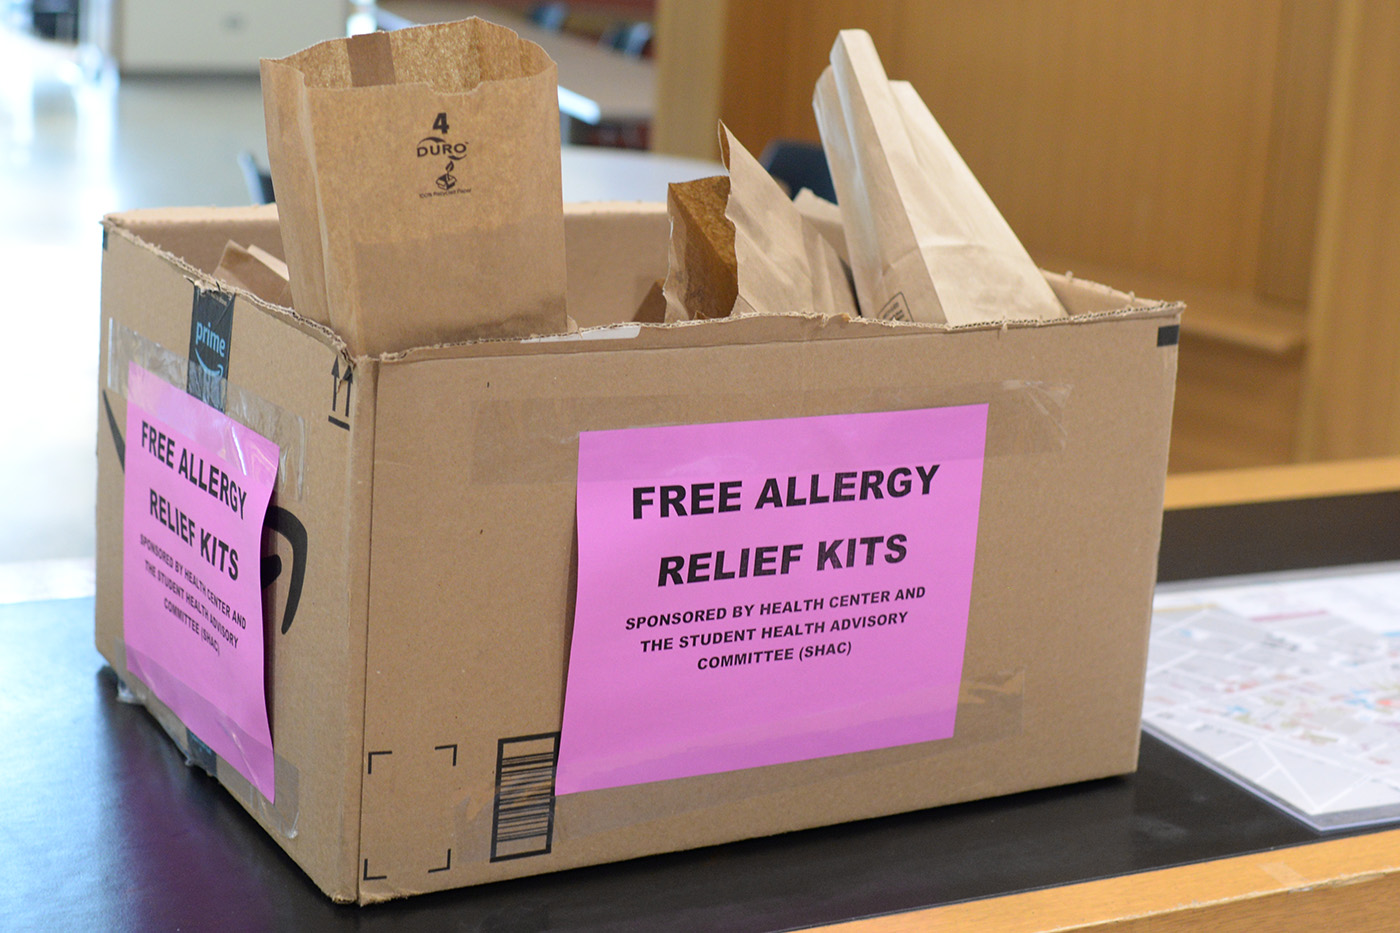 The Health Center and Student Health Advisory Committee is offering free allergy relif kits in Usdan.